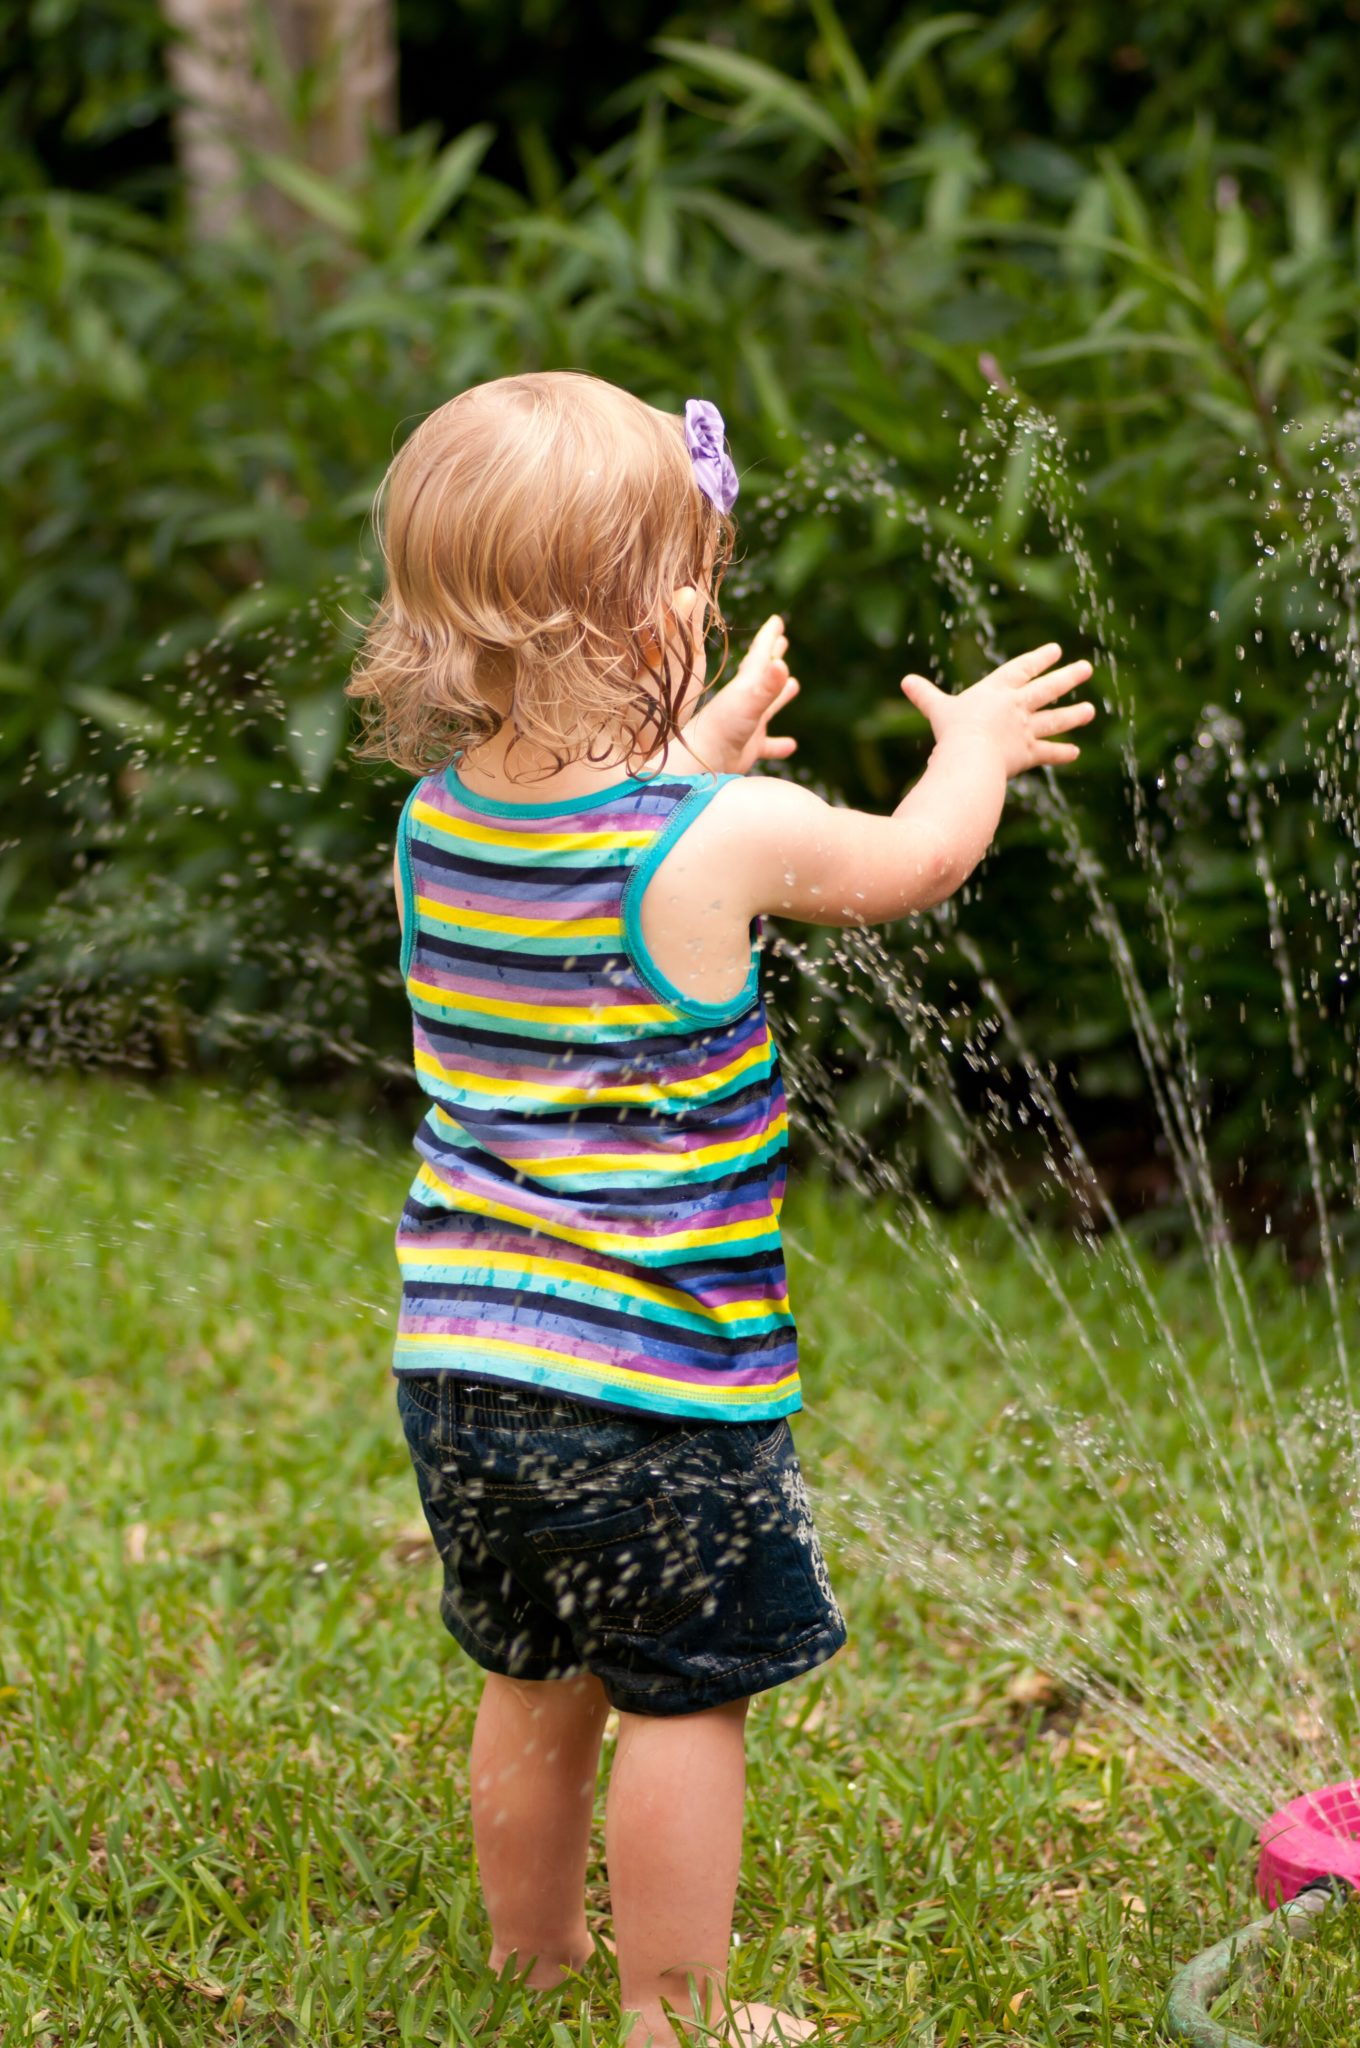 Little girl playing with hose.